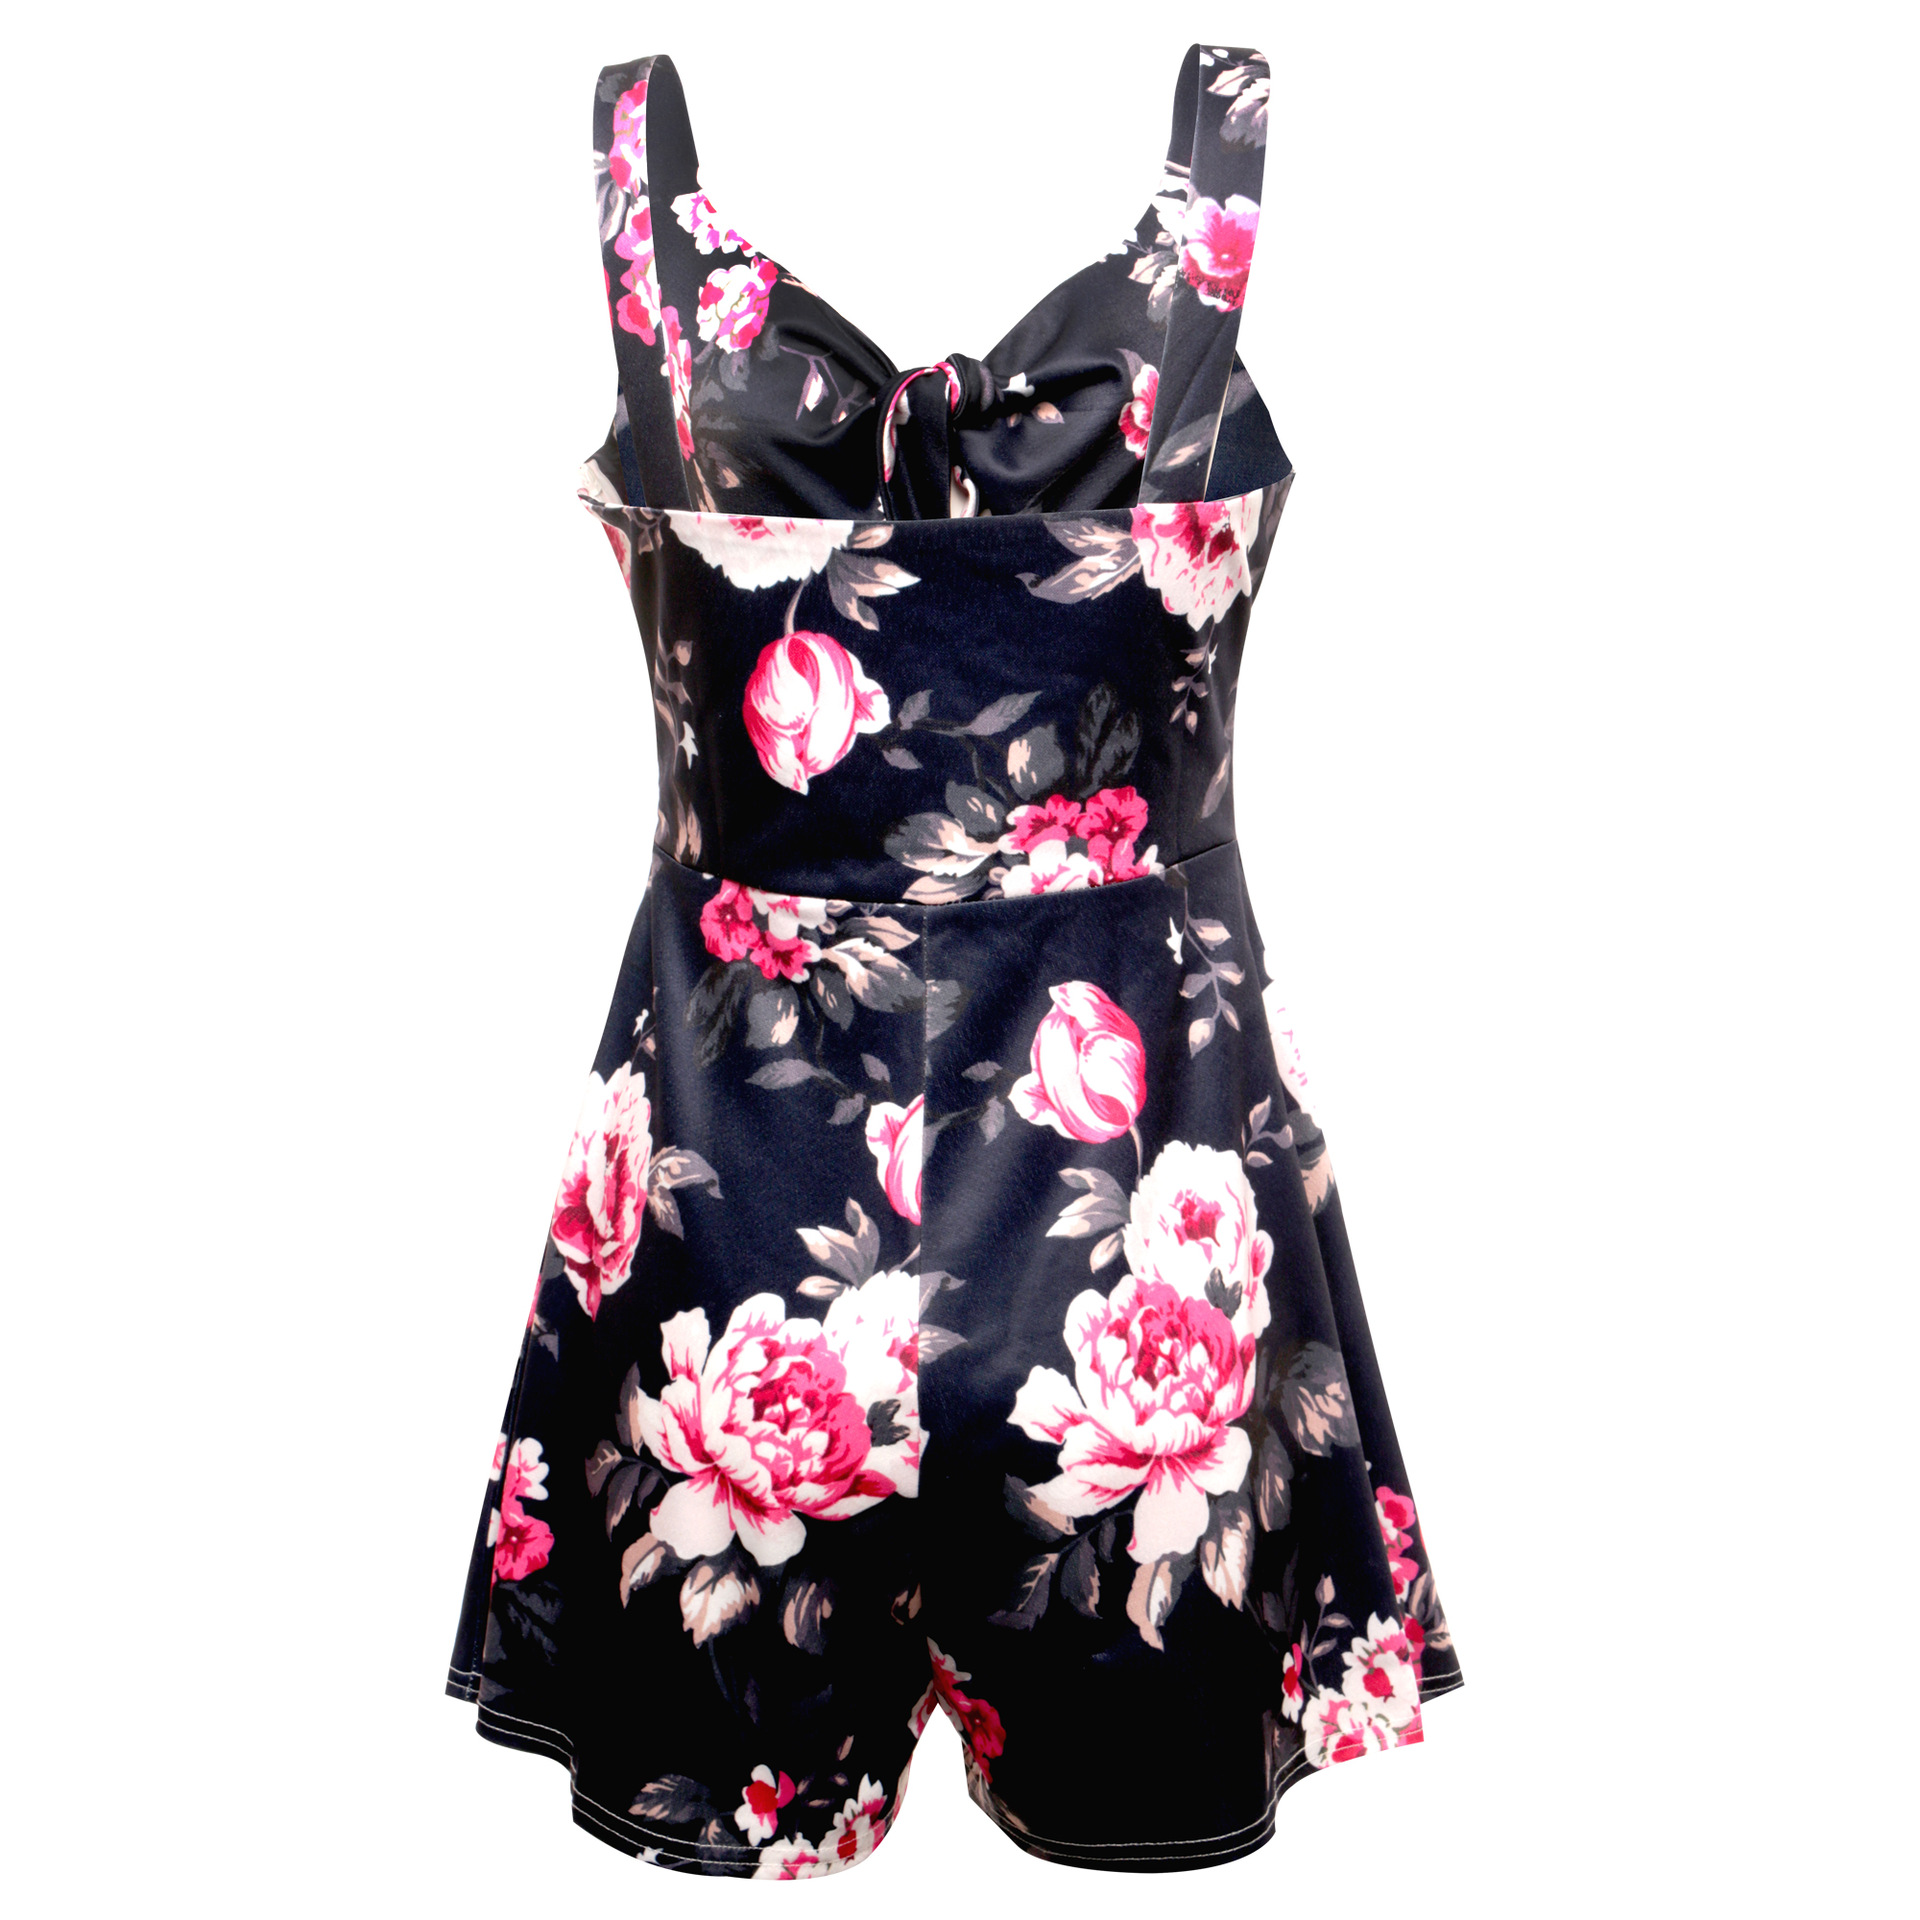 Women's Summer Print Jumpsuit Shorts Casual Loose Short Sleeve V-neck Beach Rompers Sleeveless Bodycon Sexy Party Playsuit 106